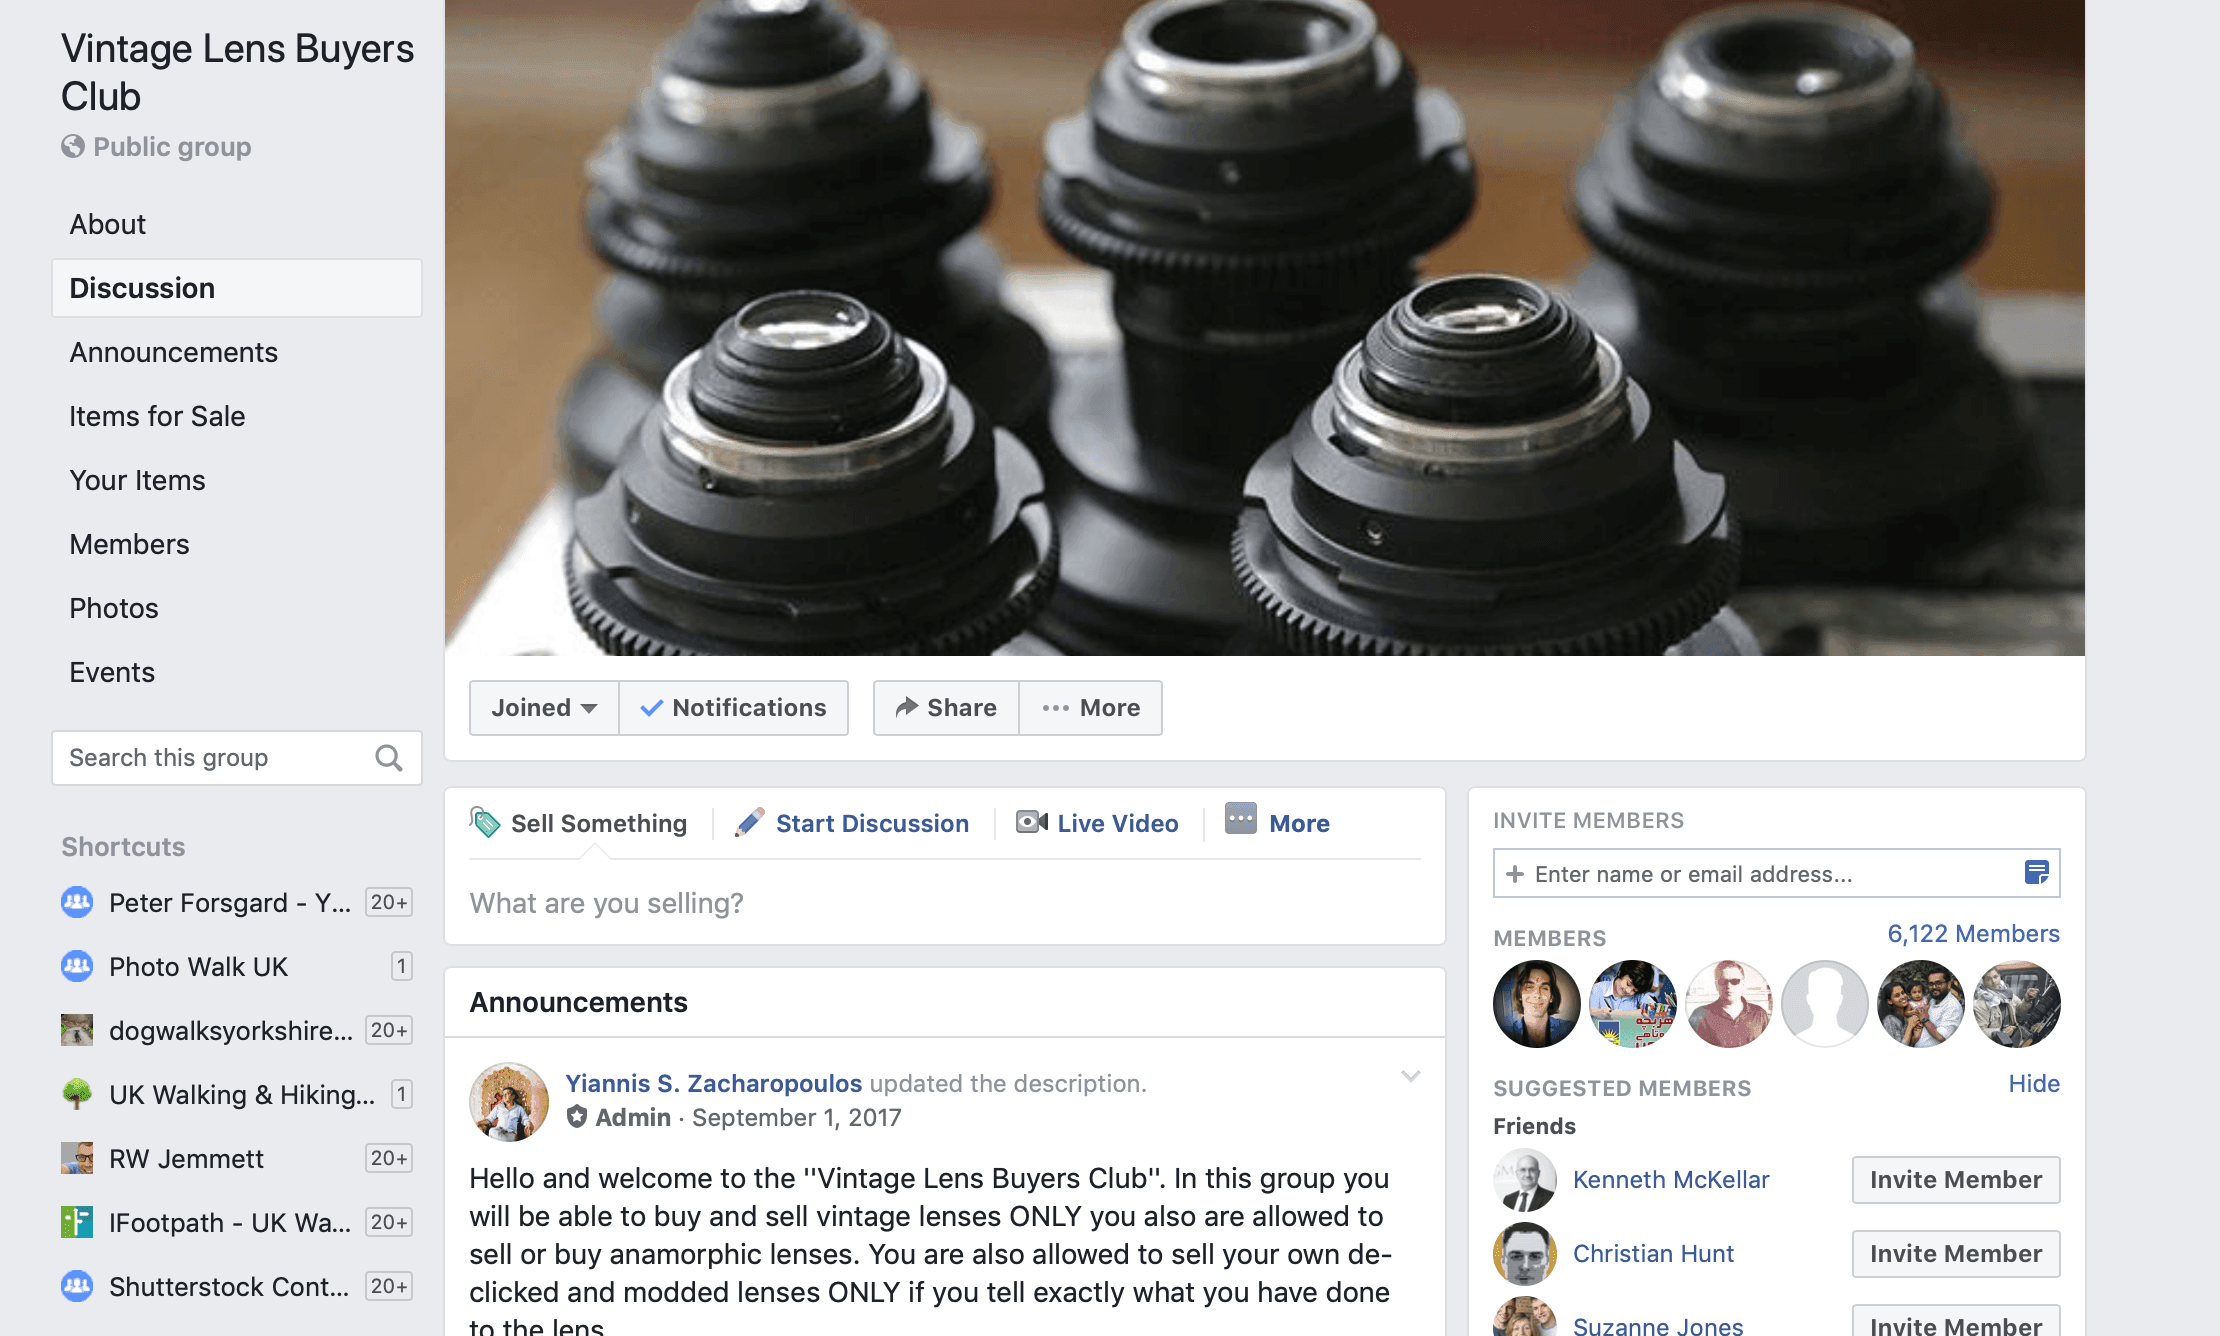 Vintage Lens Buyers Club – Facebook Group